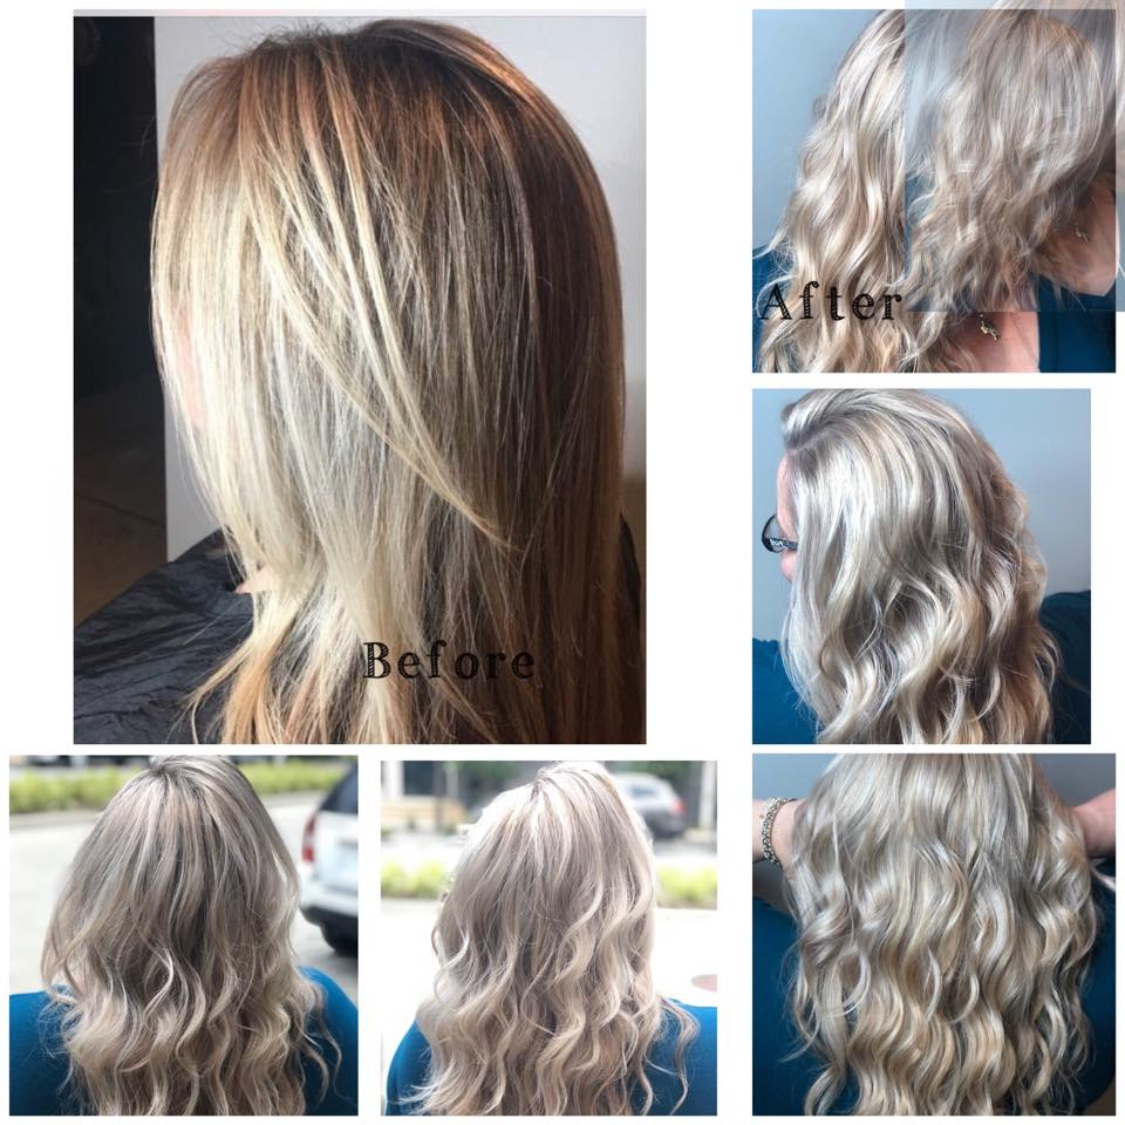 Rebecca Crosby Stylist Artistik Edge Hair Salon Lake Highlands Texas blonde before and after curls.png